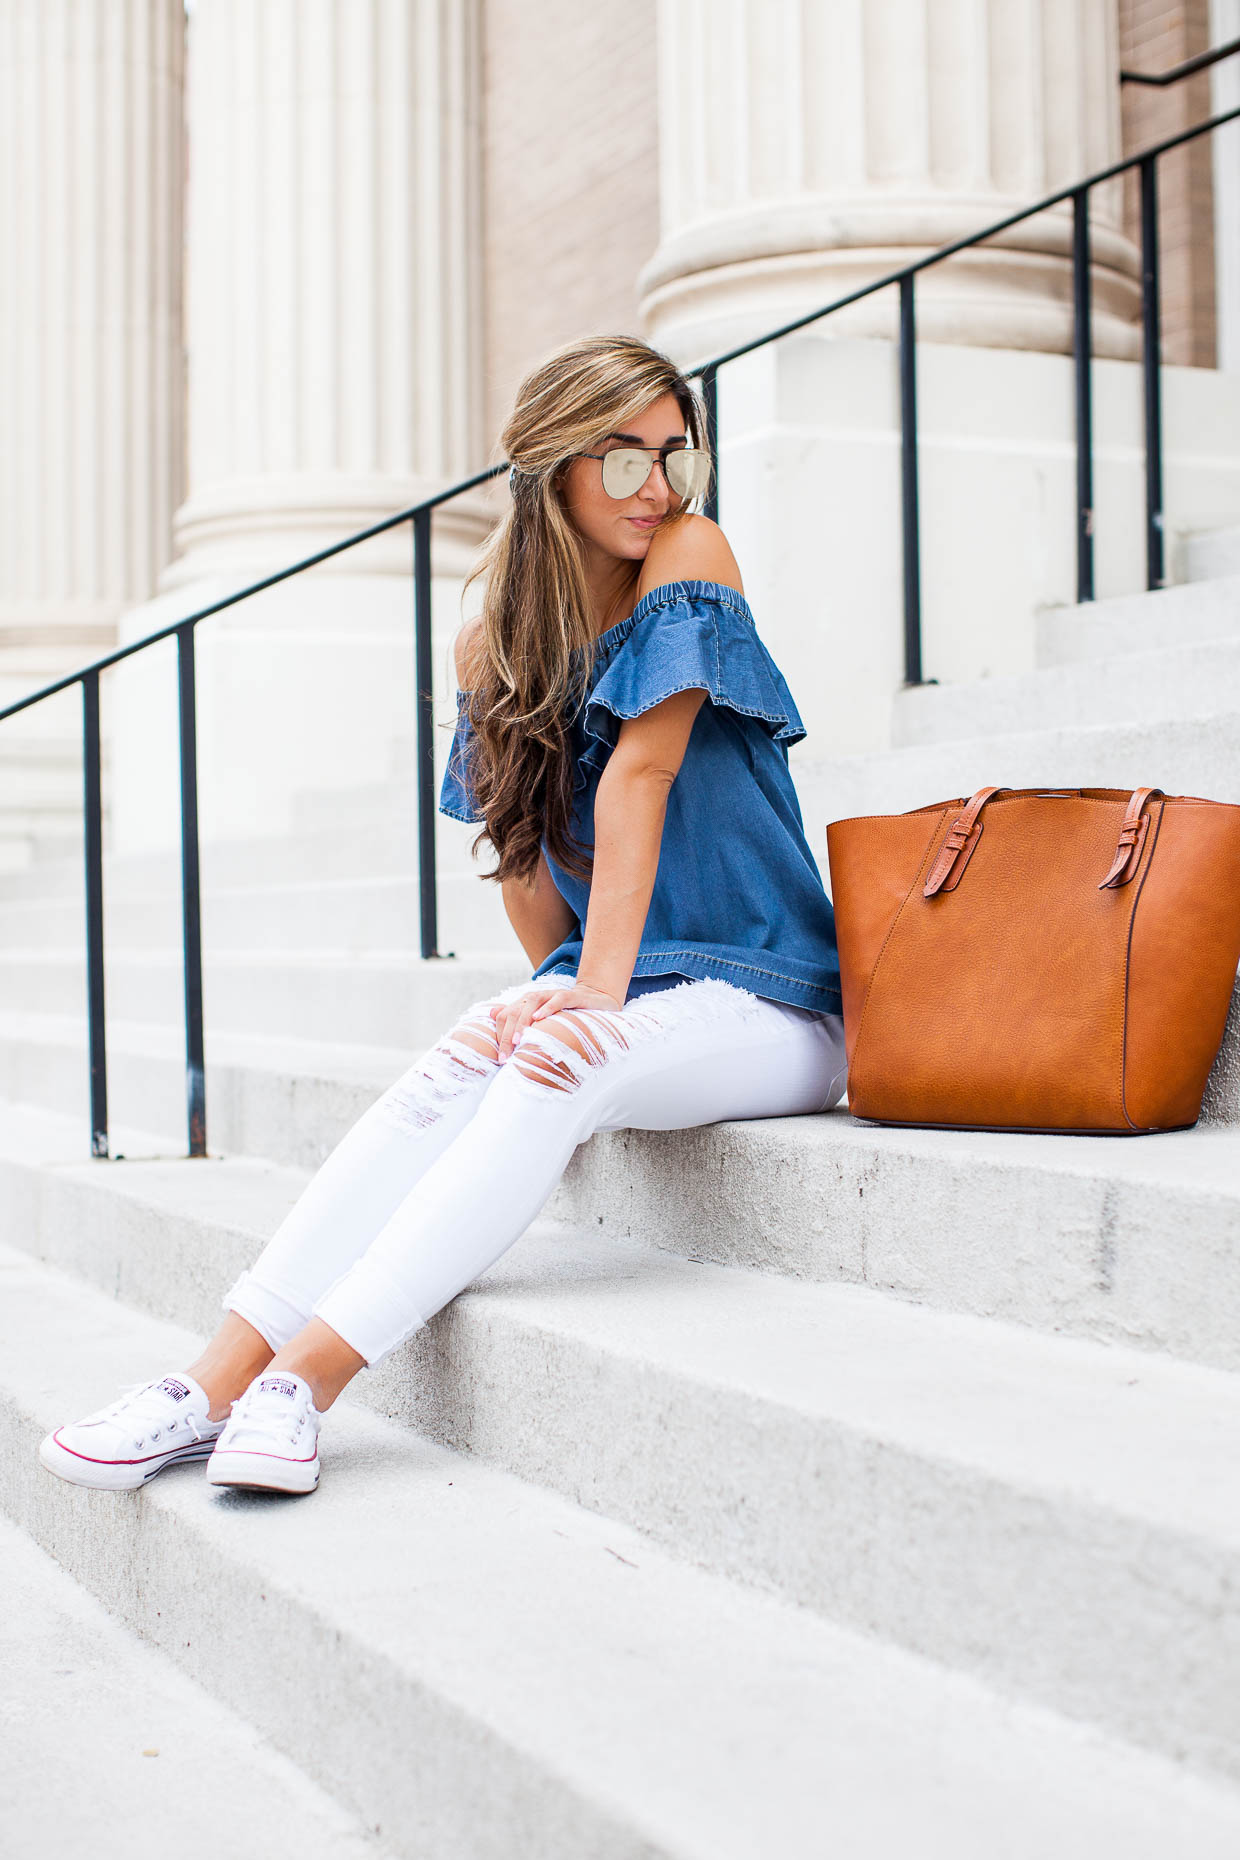 Fashion Blogger The Darling Detail is wearing a Chelsea28 Off the Shoulder Chambray Top, 'Le Color Rip' Skinny Jeans, Converse 'Shoreline' Sneakers, 'The Prince' 57mm Sunglasses, and carrying a Sole Society Faux Leather Trapeze Tote.